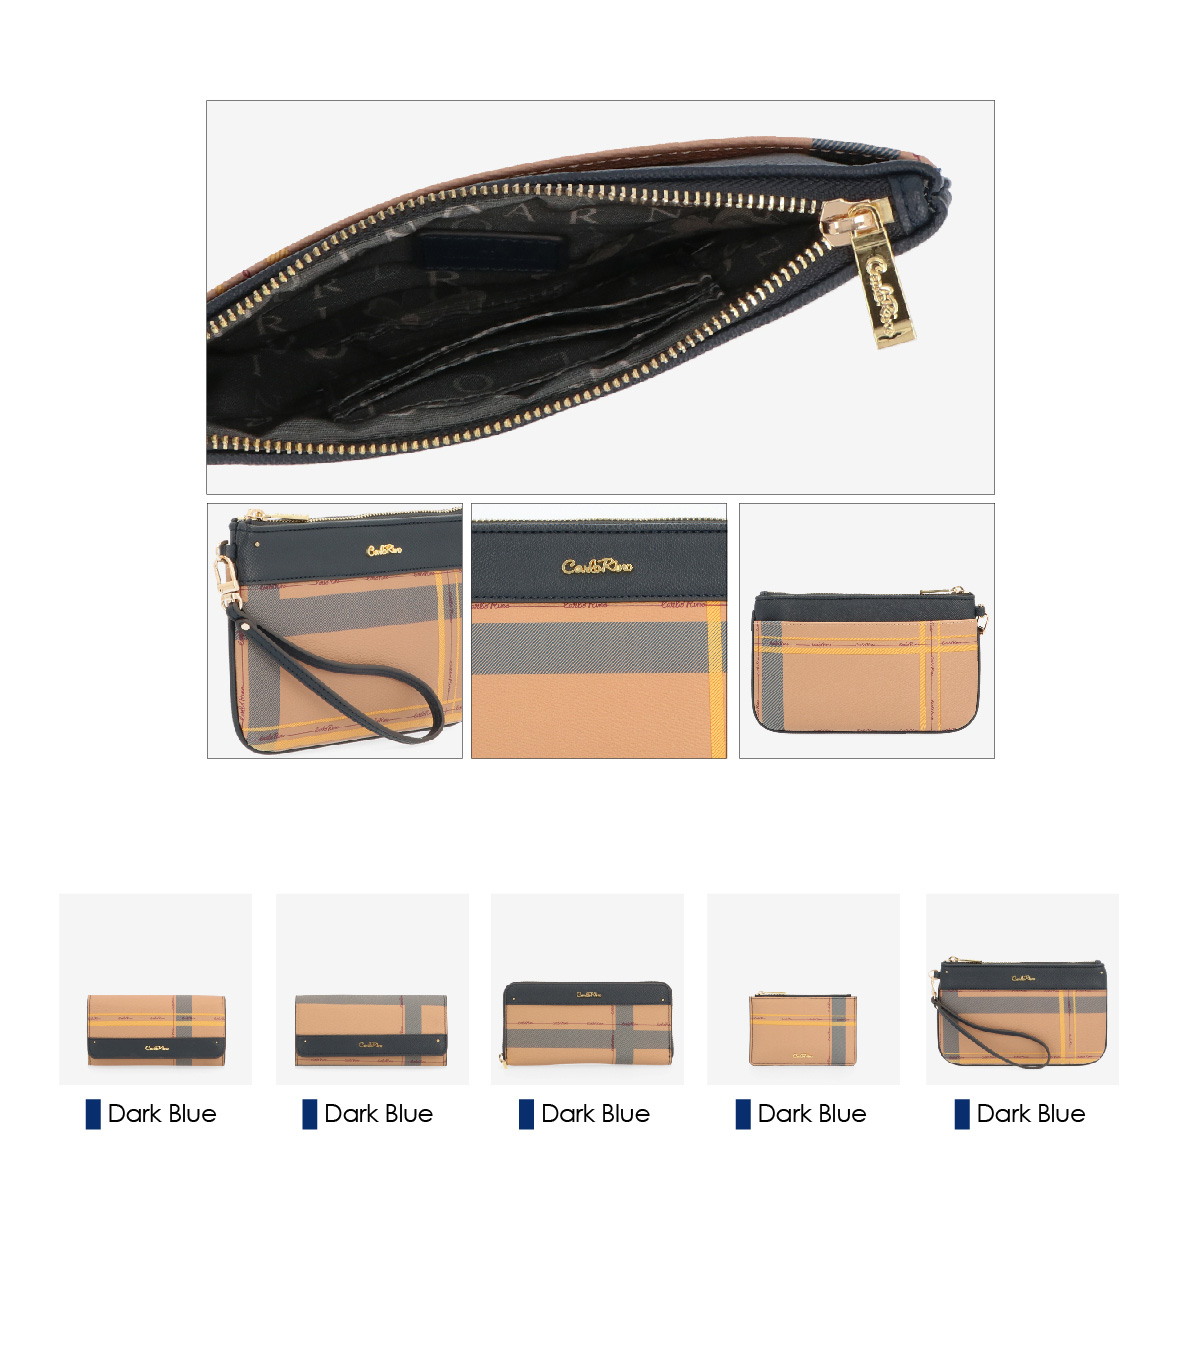 0304828H 702 13 03 - First in Line Wristlet